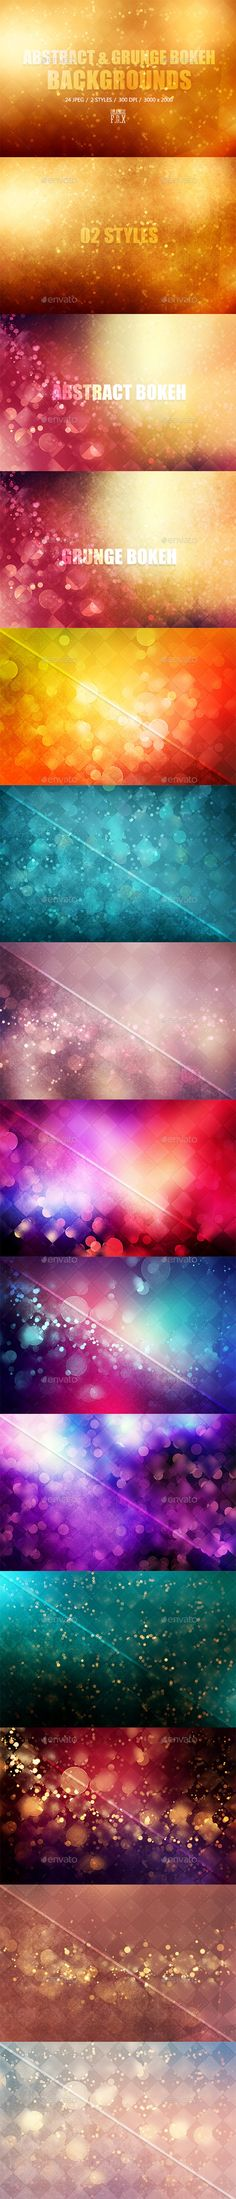 24 Bokeh Backgrounds - 02 Styles. Download here: http://graphicriver.net/item/24-bokeh-backgrounds-02-styles/12034498?ref=ksioks